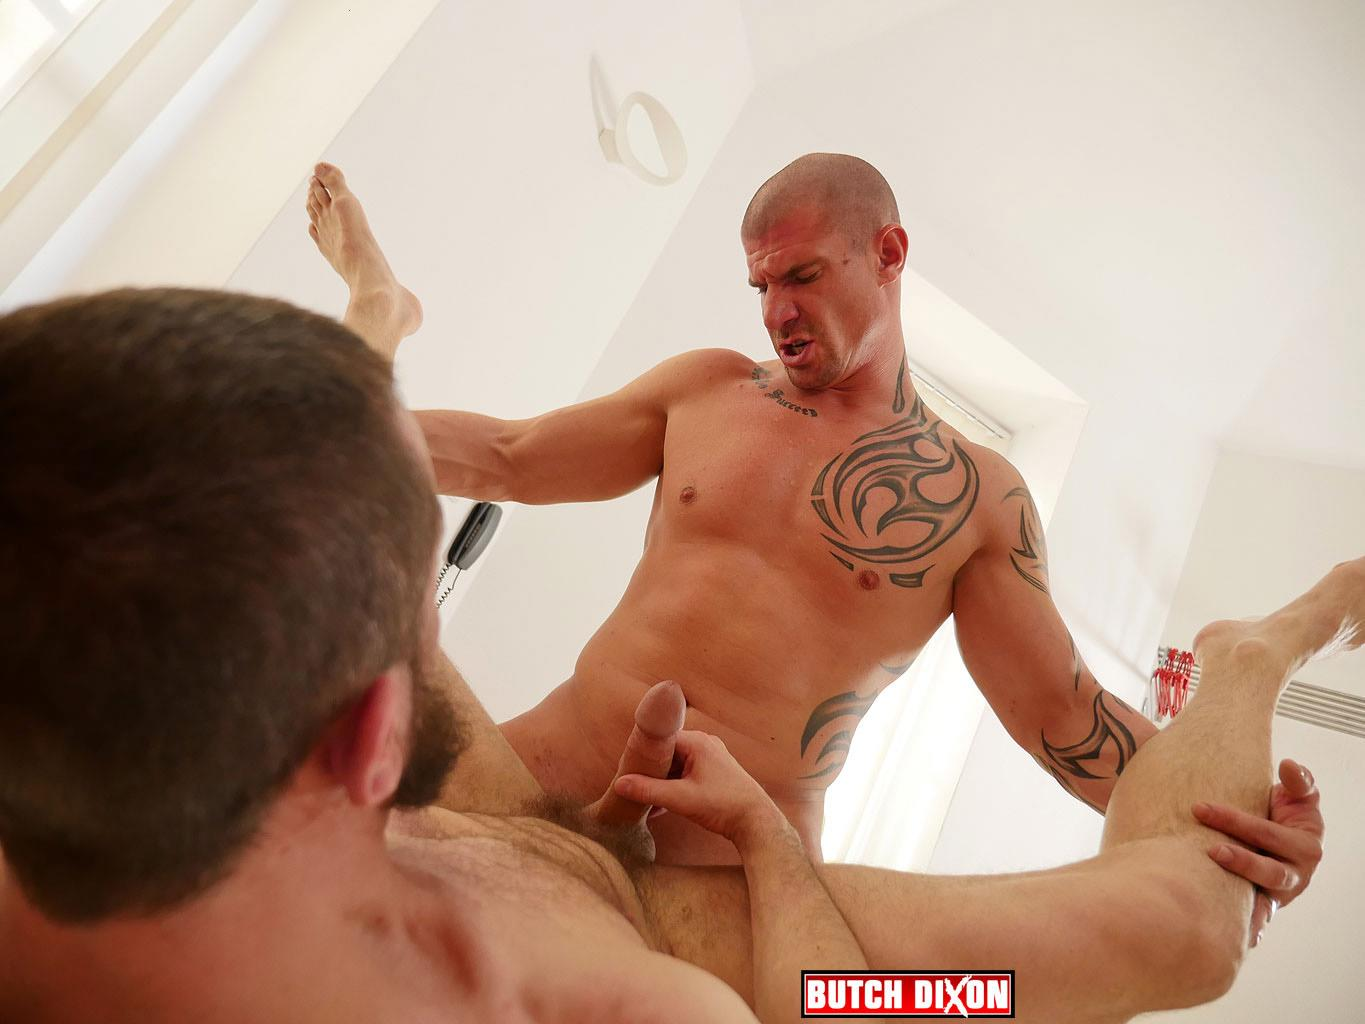 Butch-Dixon-Erik-Lenn-and-Mike-Bourne-Masculine-Guys-Fucking-Bareback-Amateur-Gay-Porn-18 Beefy Masculine Guys Fucking Bareback With A Big Uncut Cock